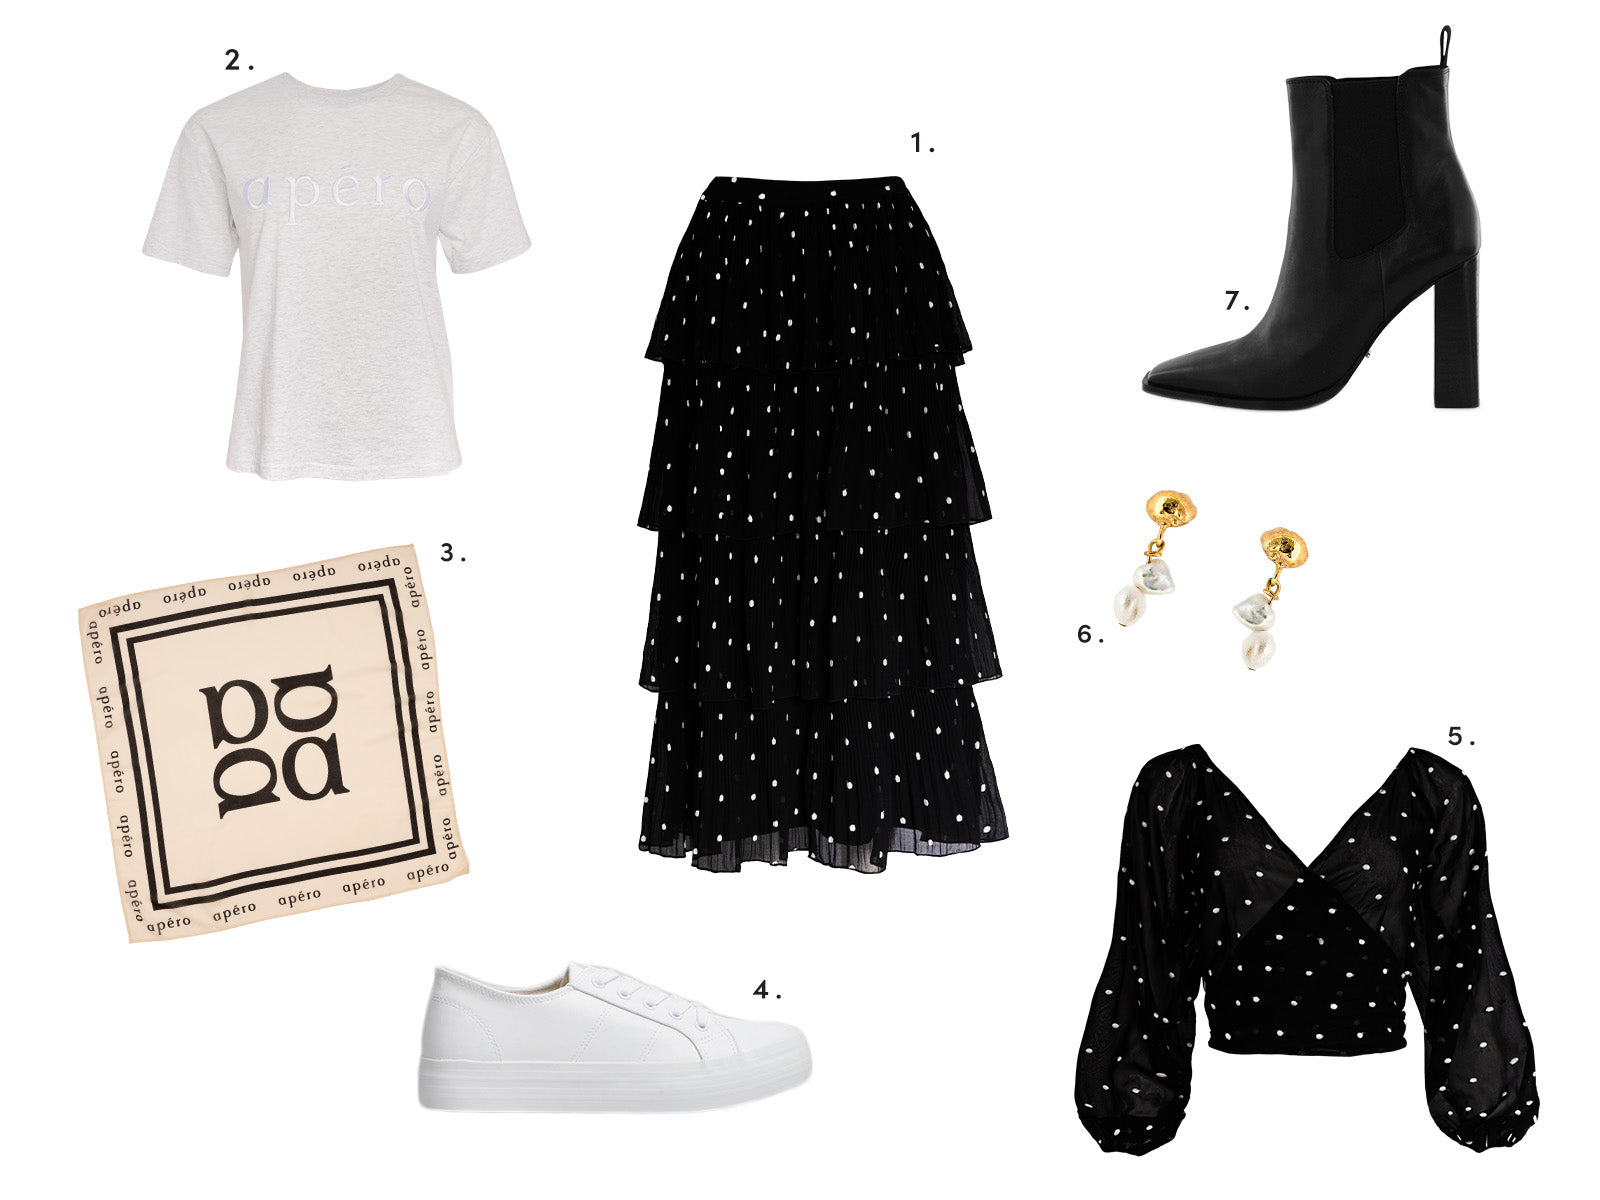 Winter Styling Look with frill skirt embroidered apero logo tee hair scarf and more